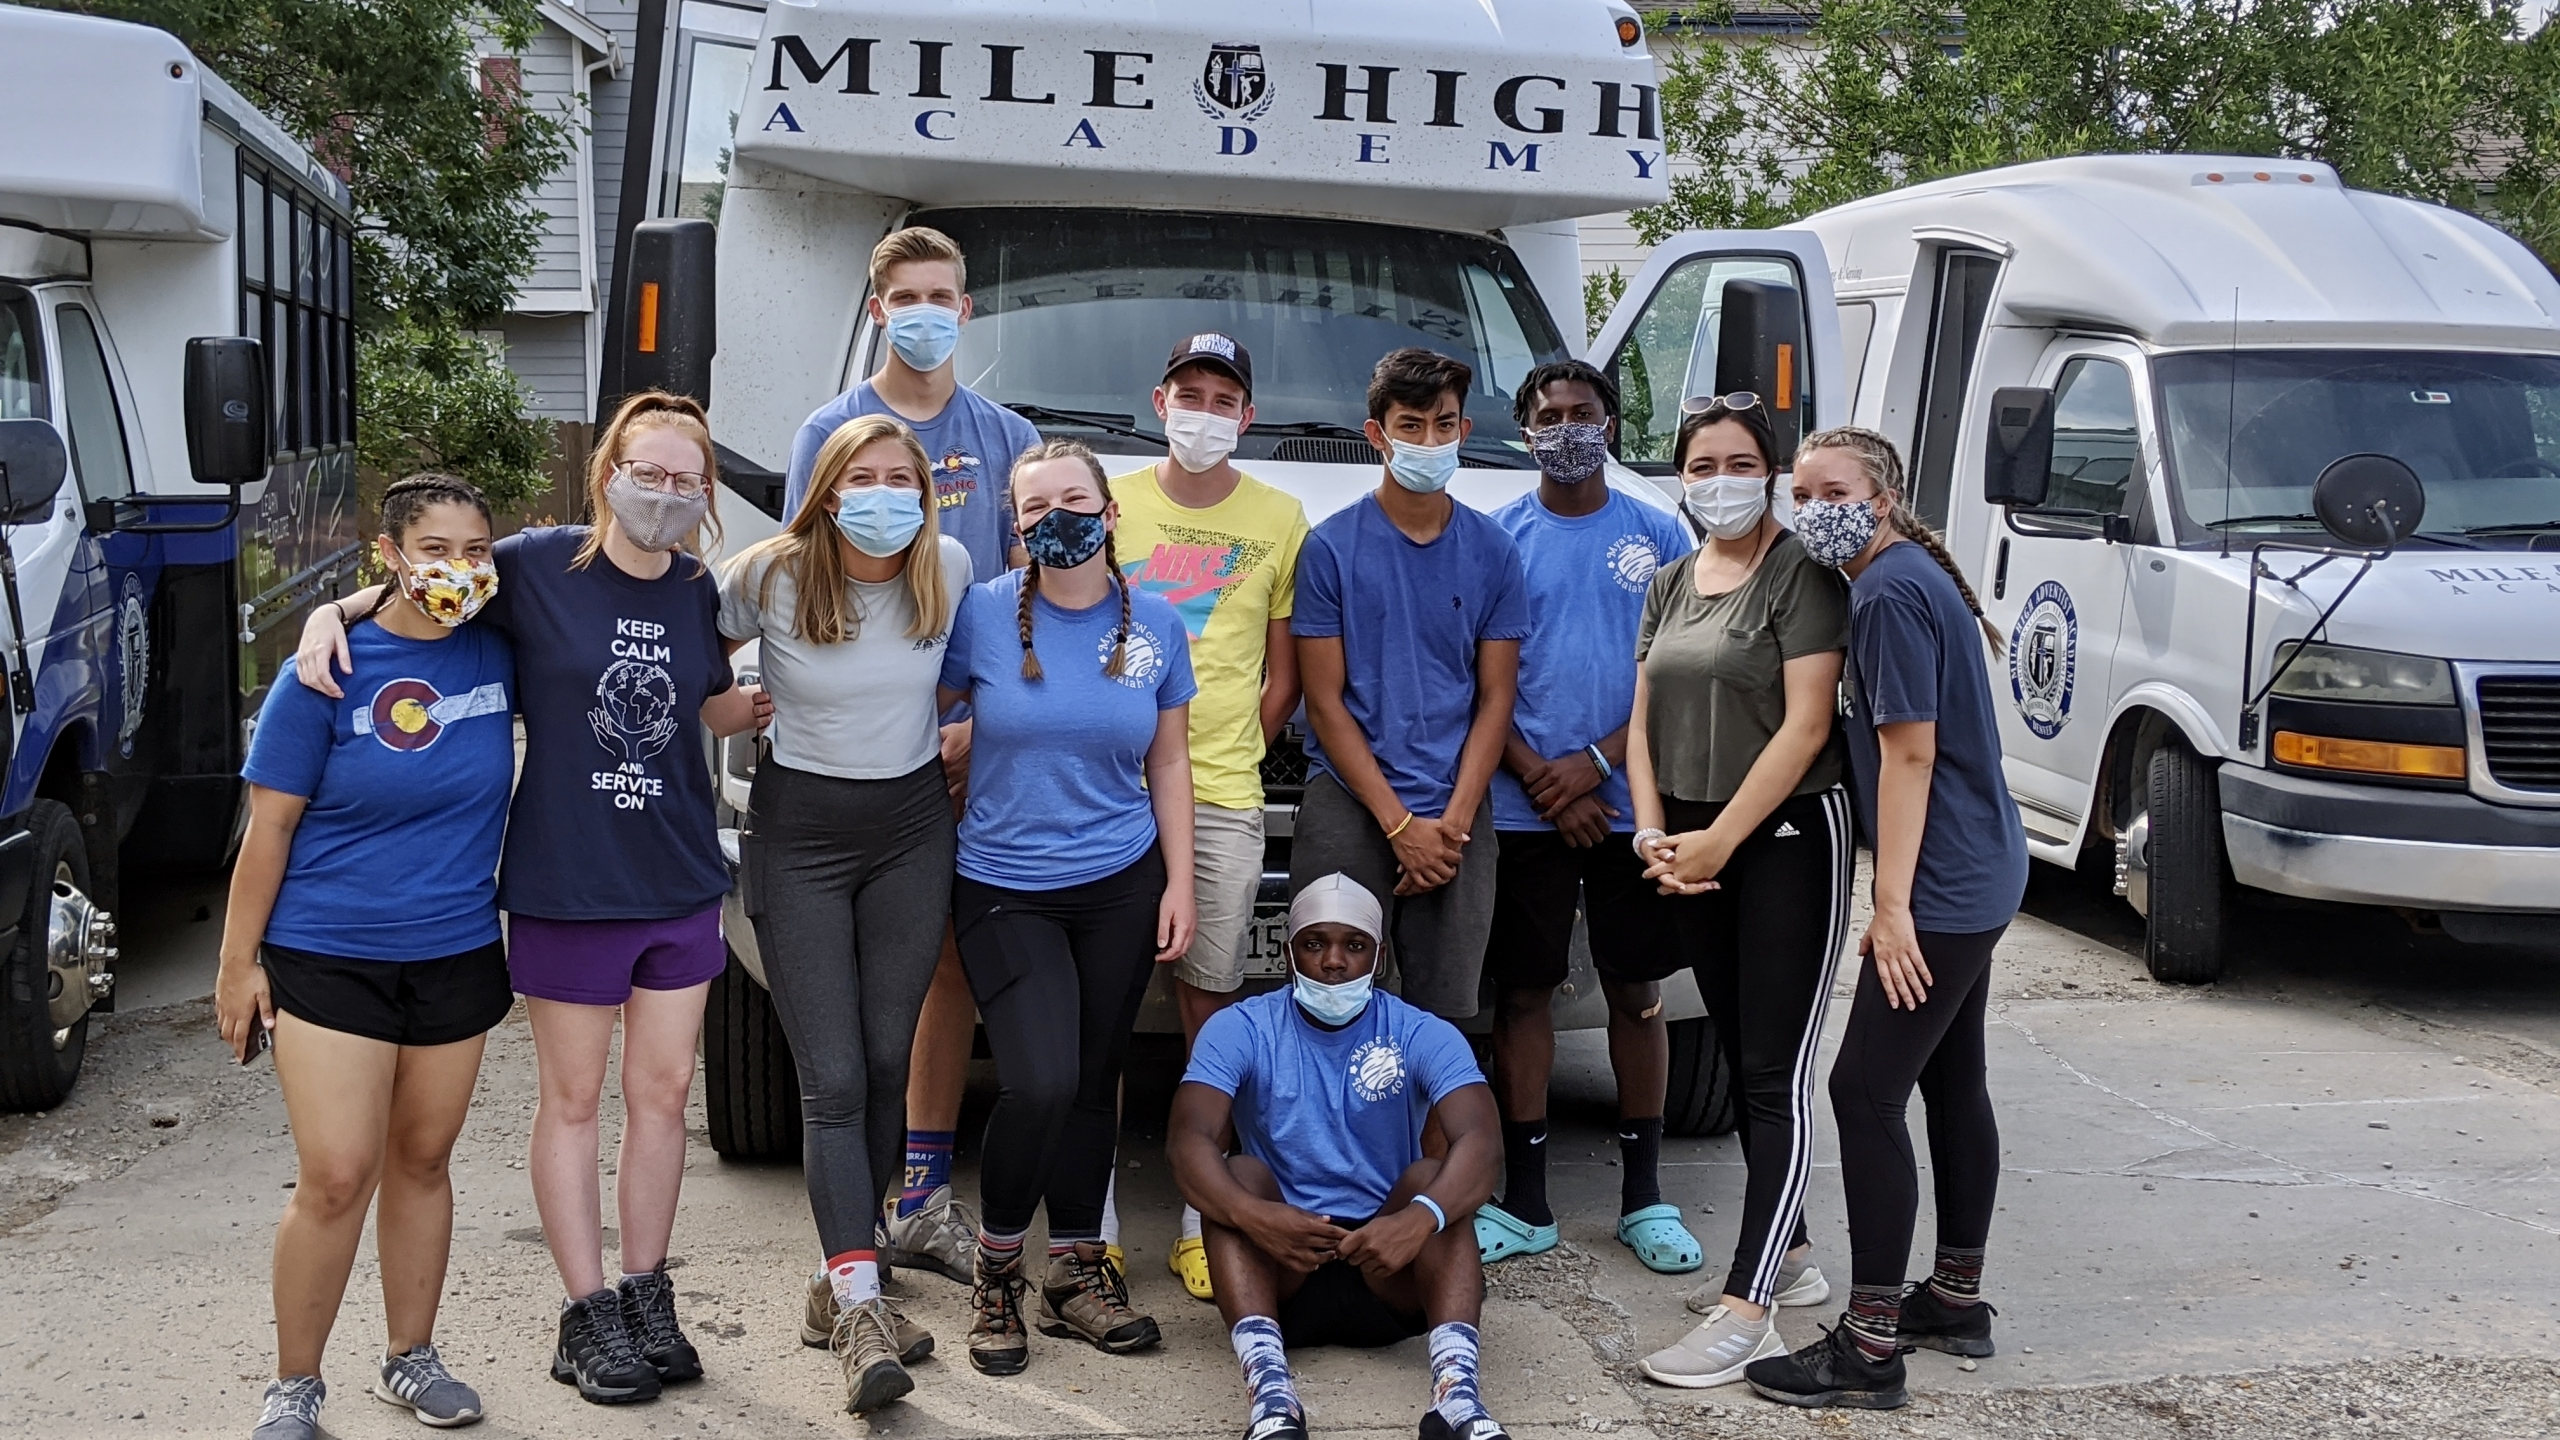 MOTHER NATURE TESTS ENDURANCE OF MHA STUDENTS DURING SENIOR SURVIVAL